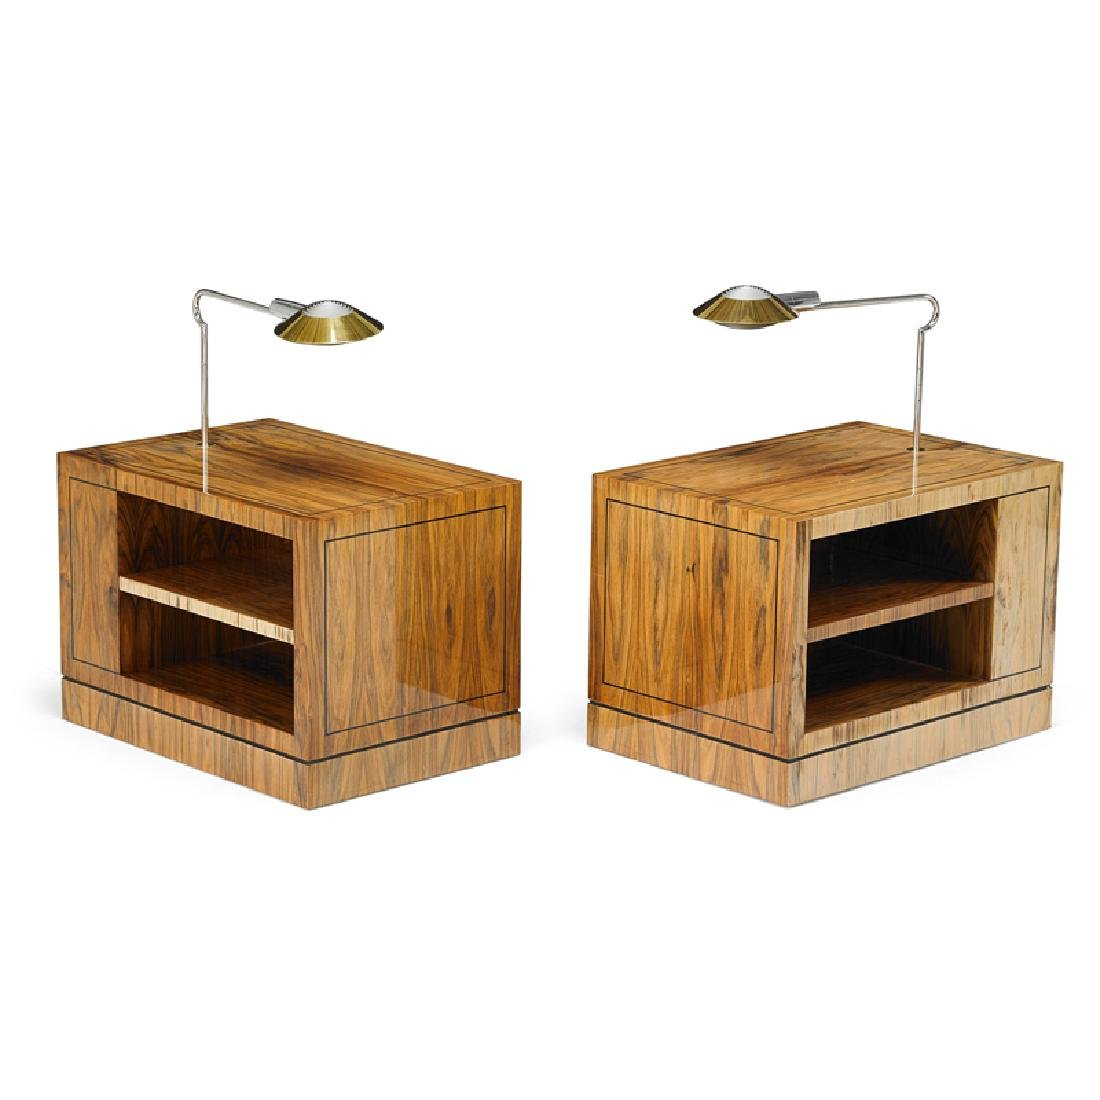 KARL SPRINGER; CEDRIC HARTMAN Pair of side tables